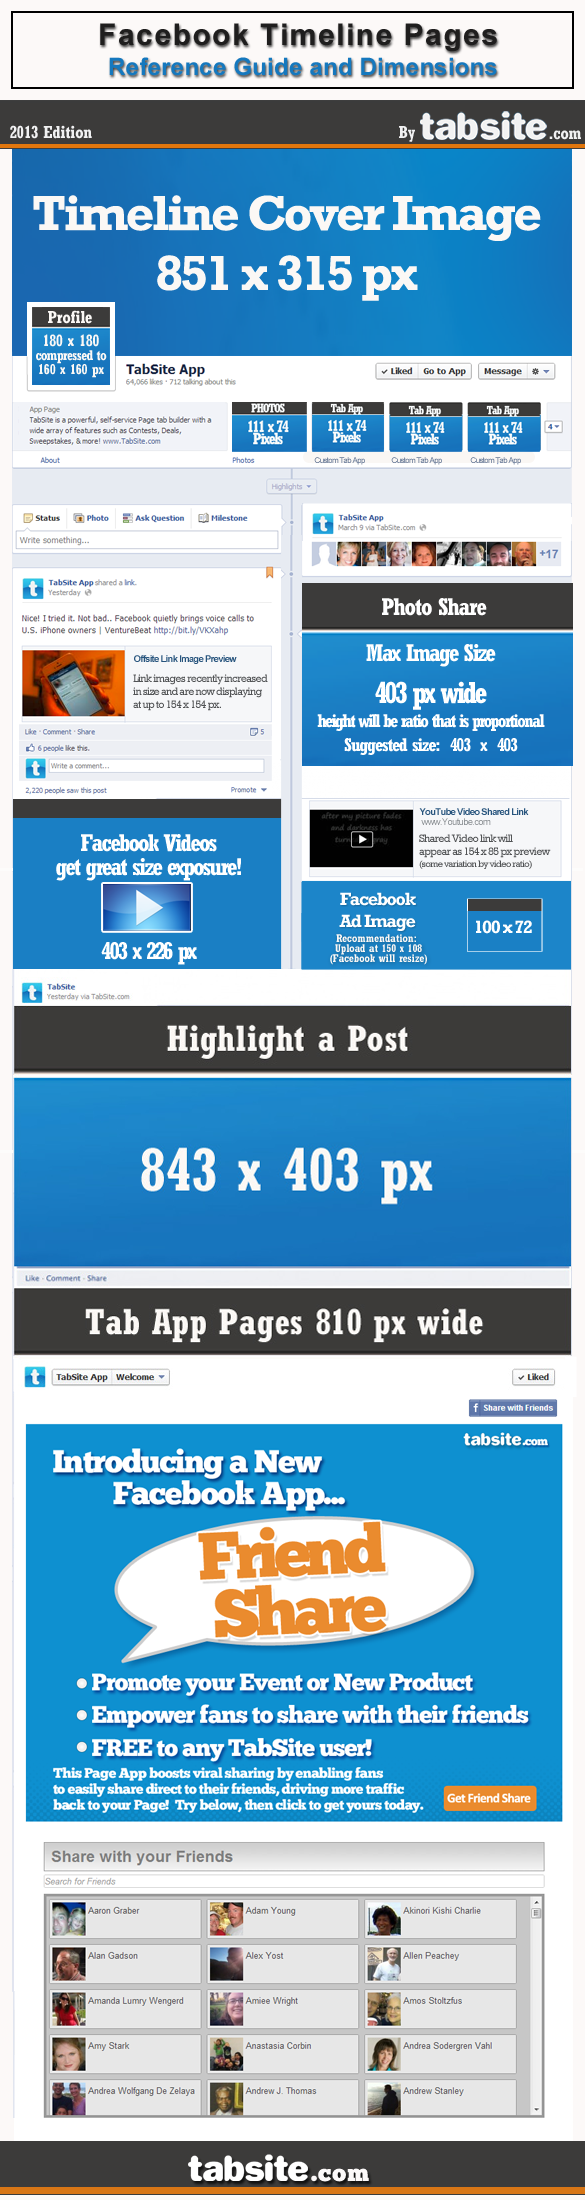 Facebook Timeline Pages Image Dimensions and Guide - Infographic